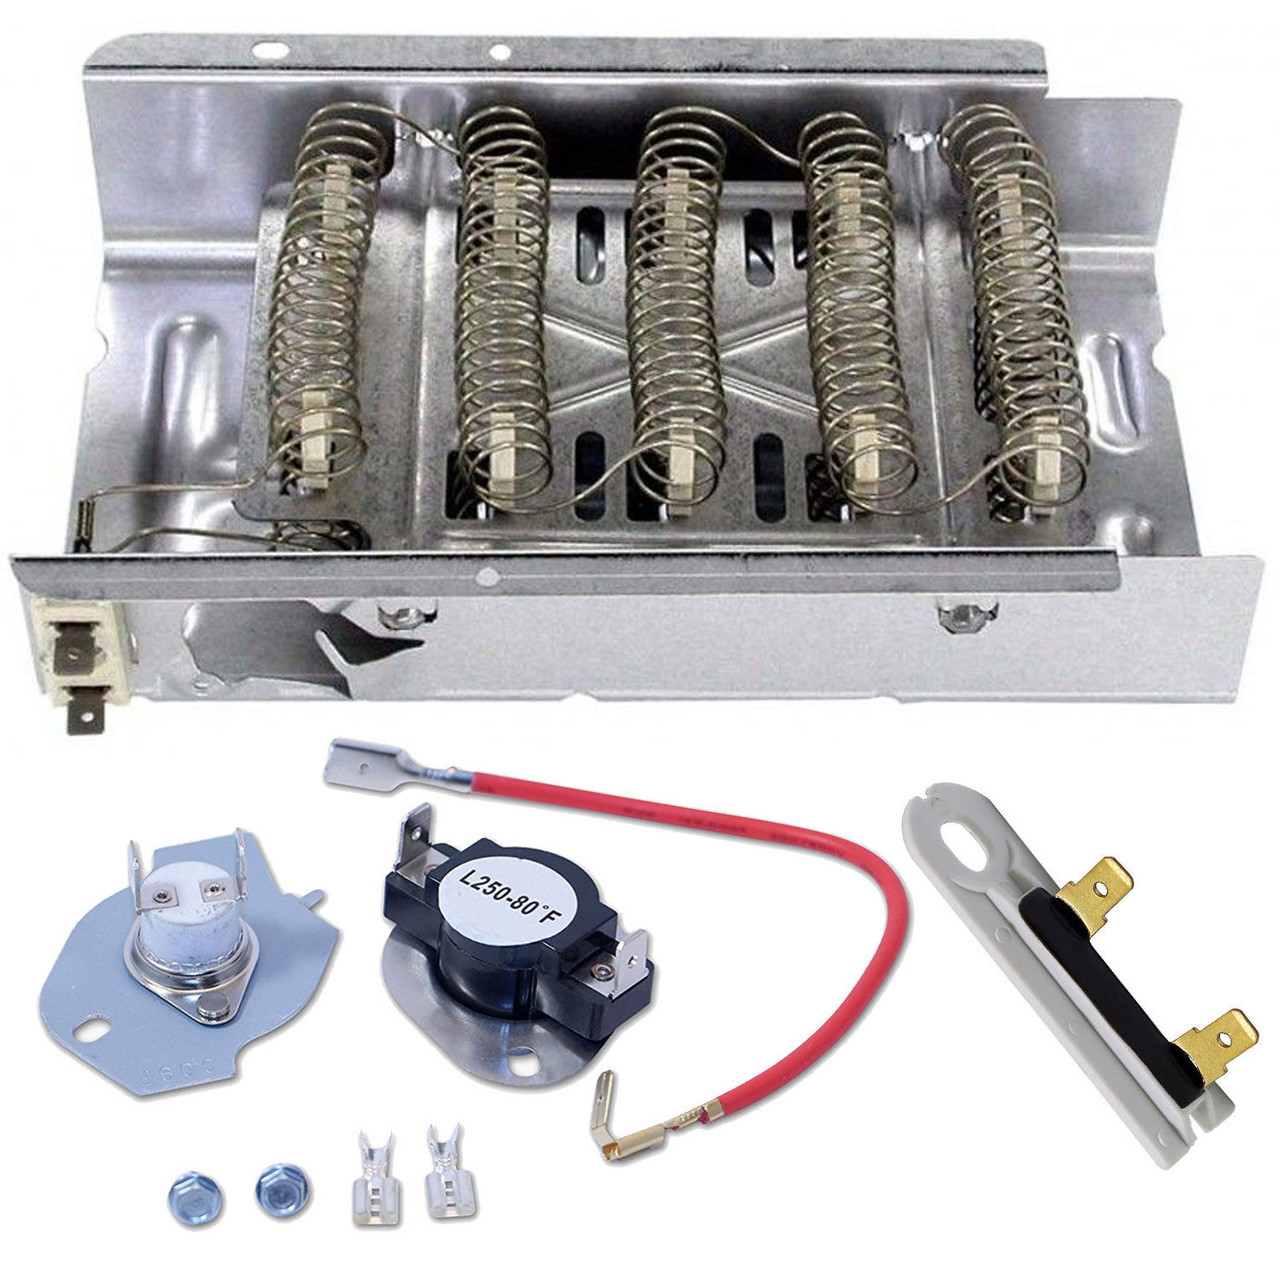 WED5840SW0 Heating Element And Thermostat Kit on